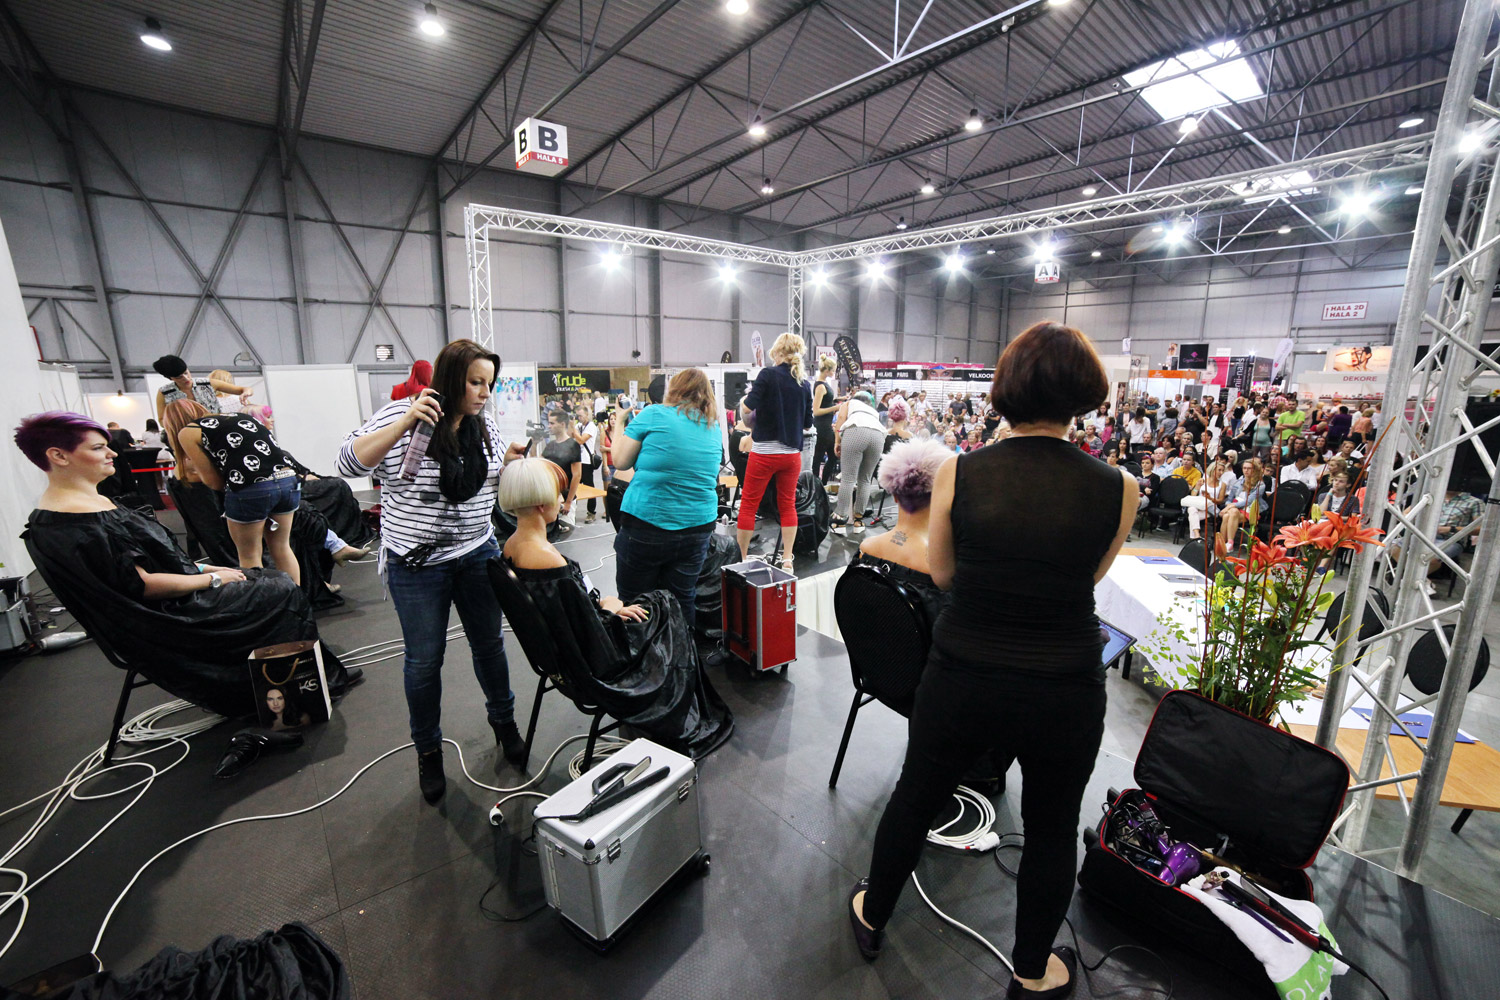 Atmosphere during the competition World of Beauty & Spa – Inspiration 2016.